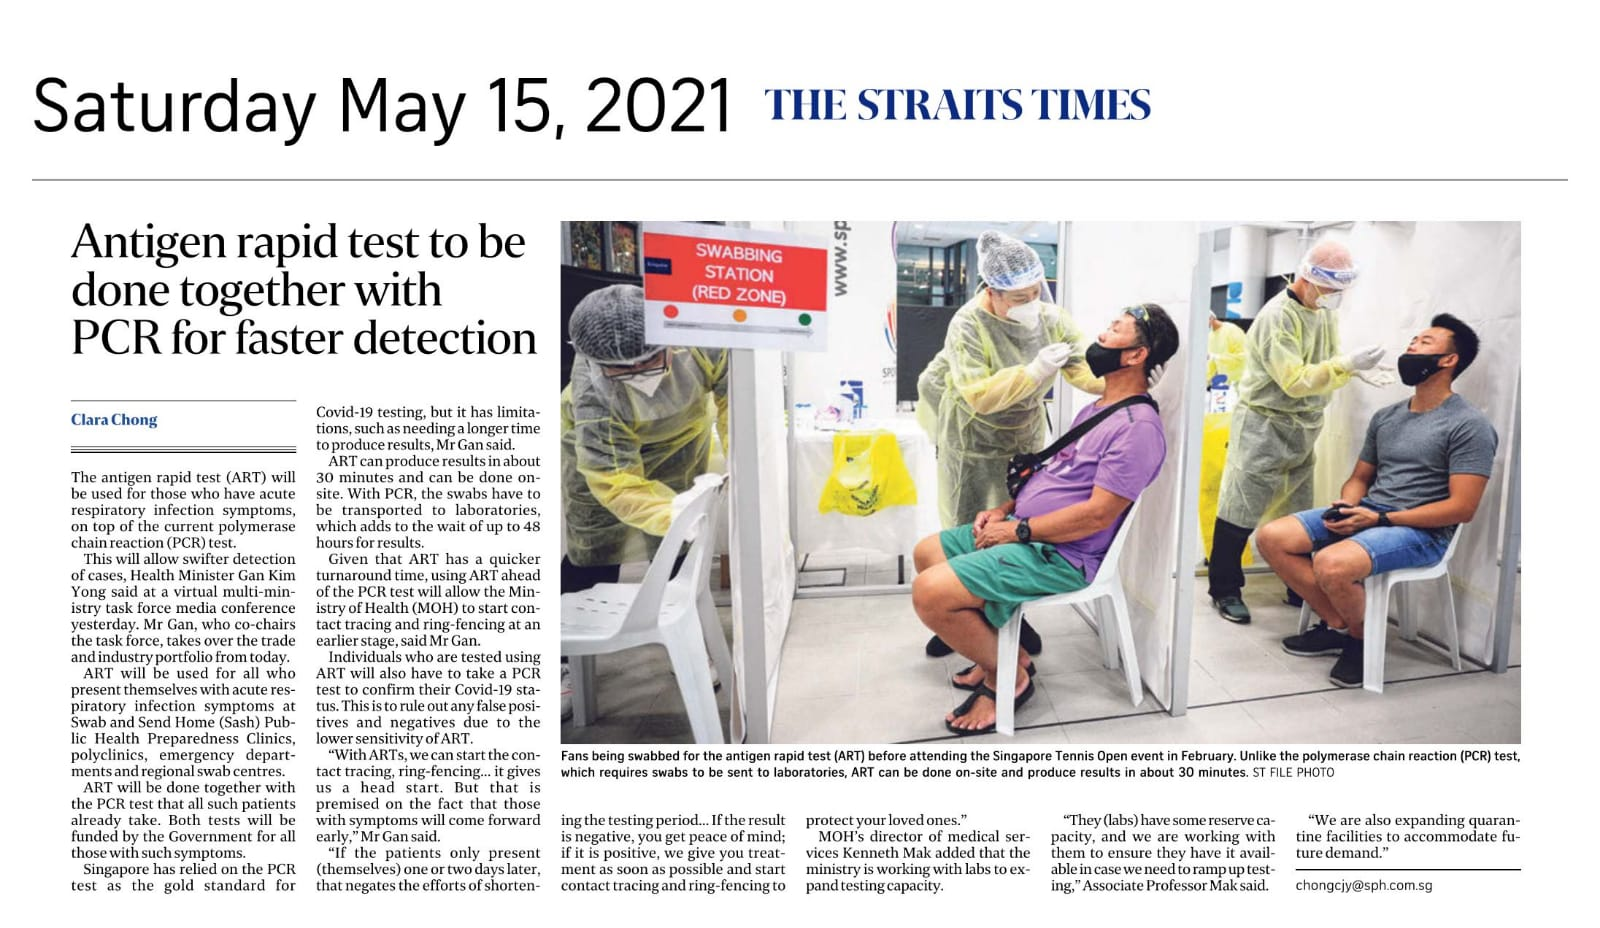 Antigen rapid test to be done together with PCR for faster detection - Published in The Straits Times May 15, 2021